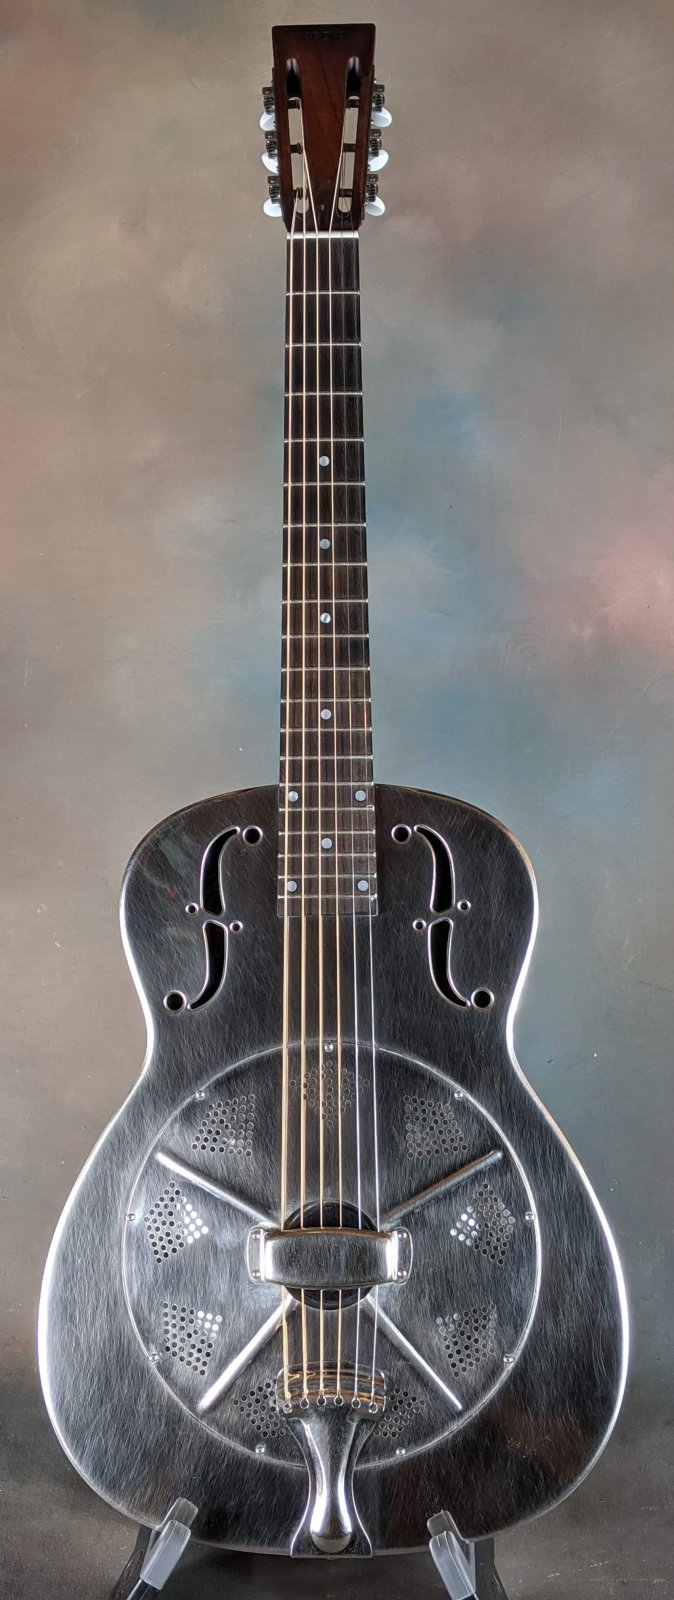 2017 National NRP Steel Body 14-fret Resonator